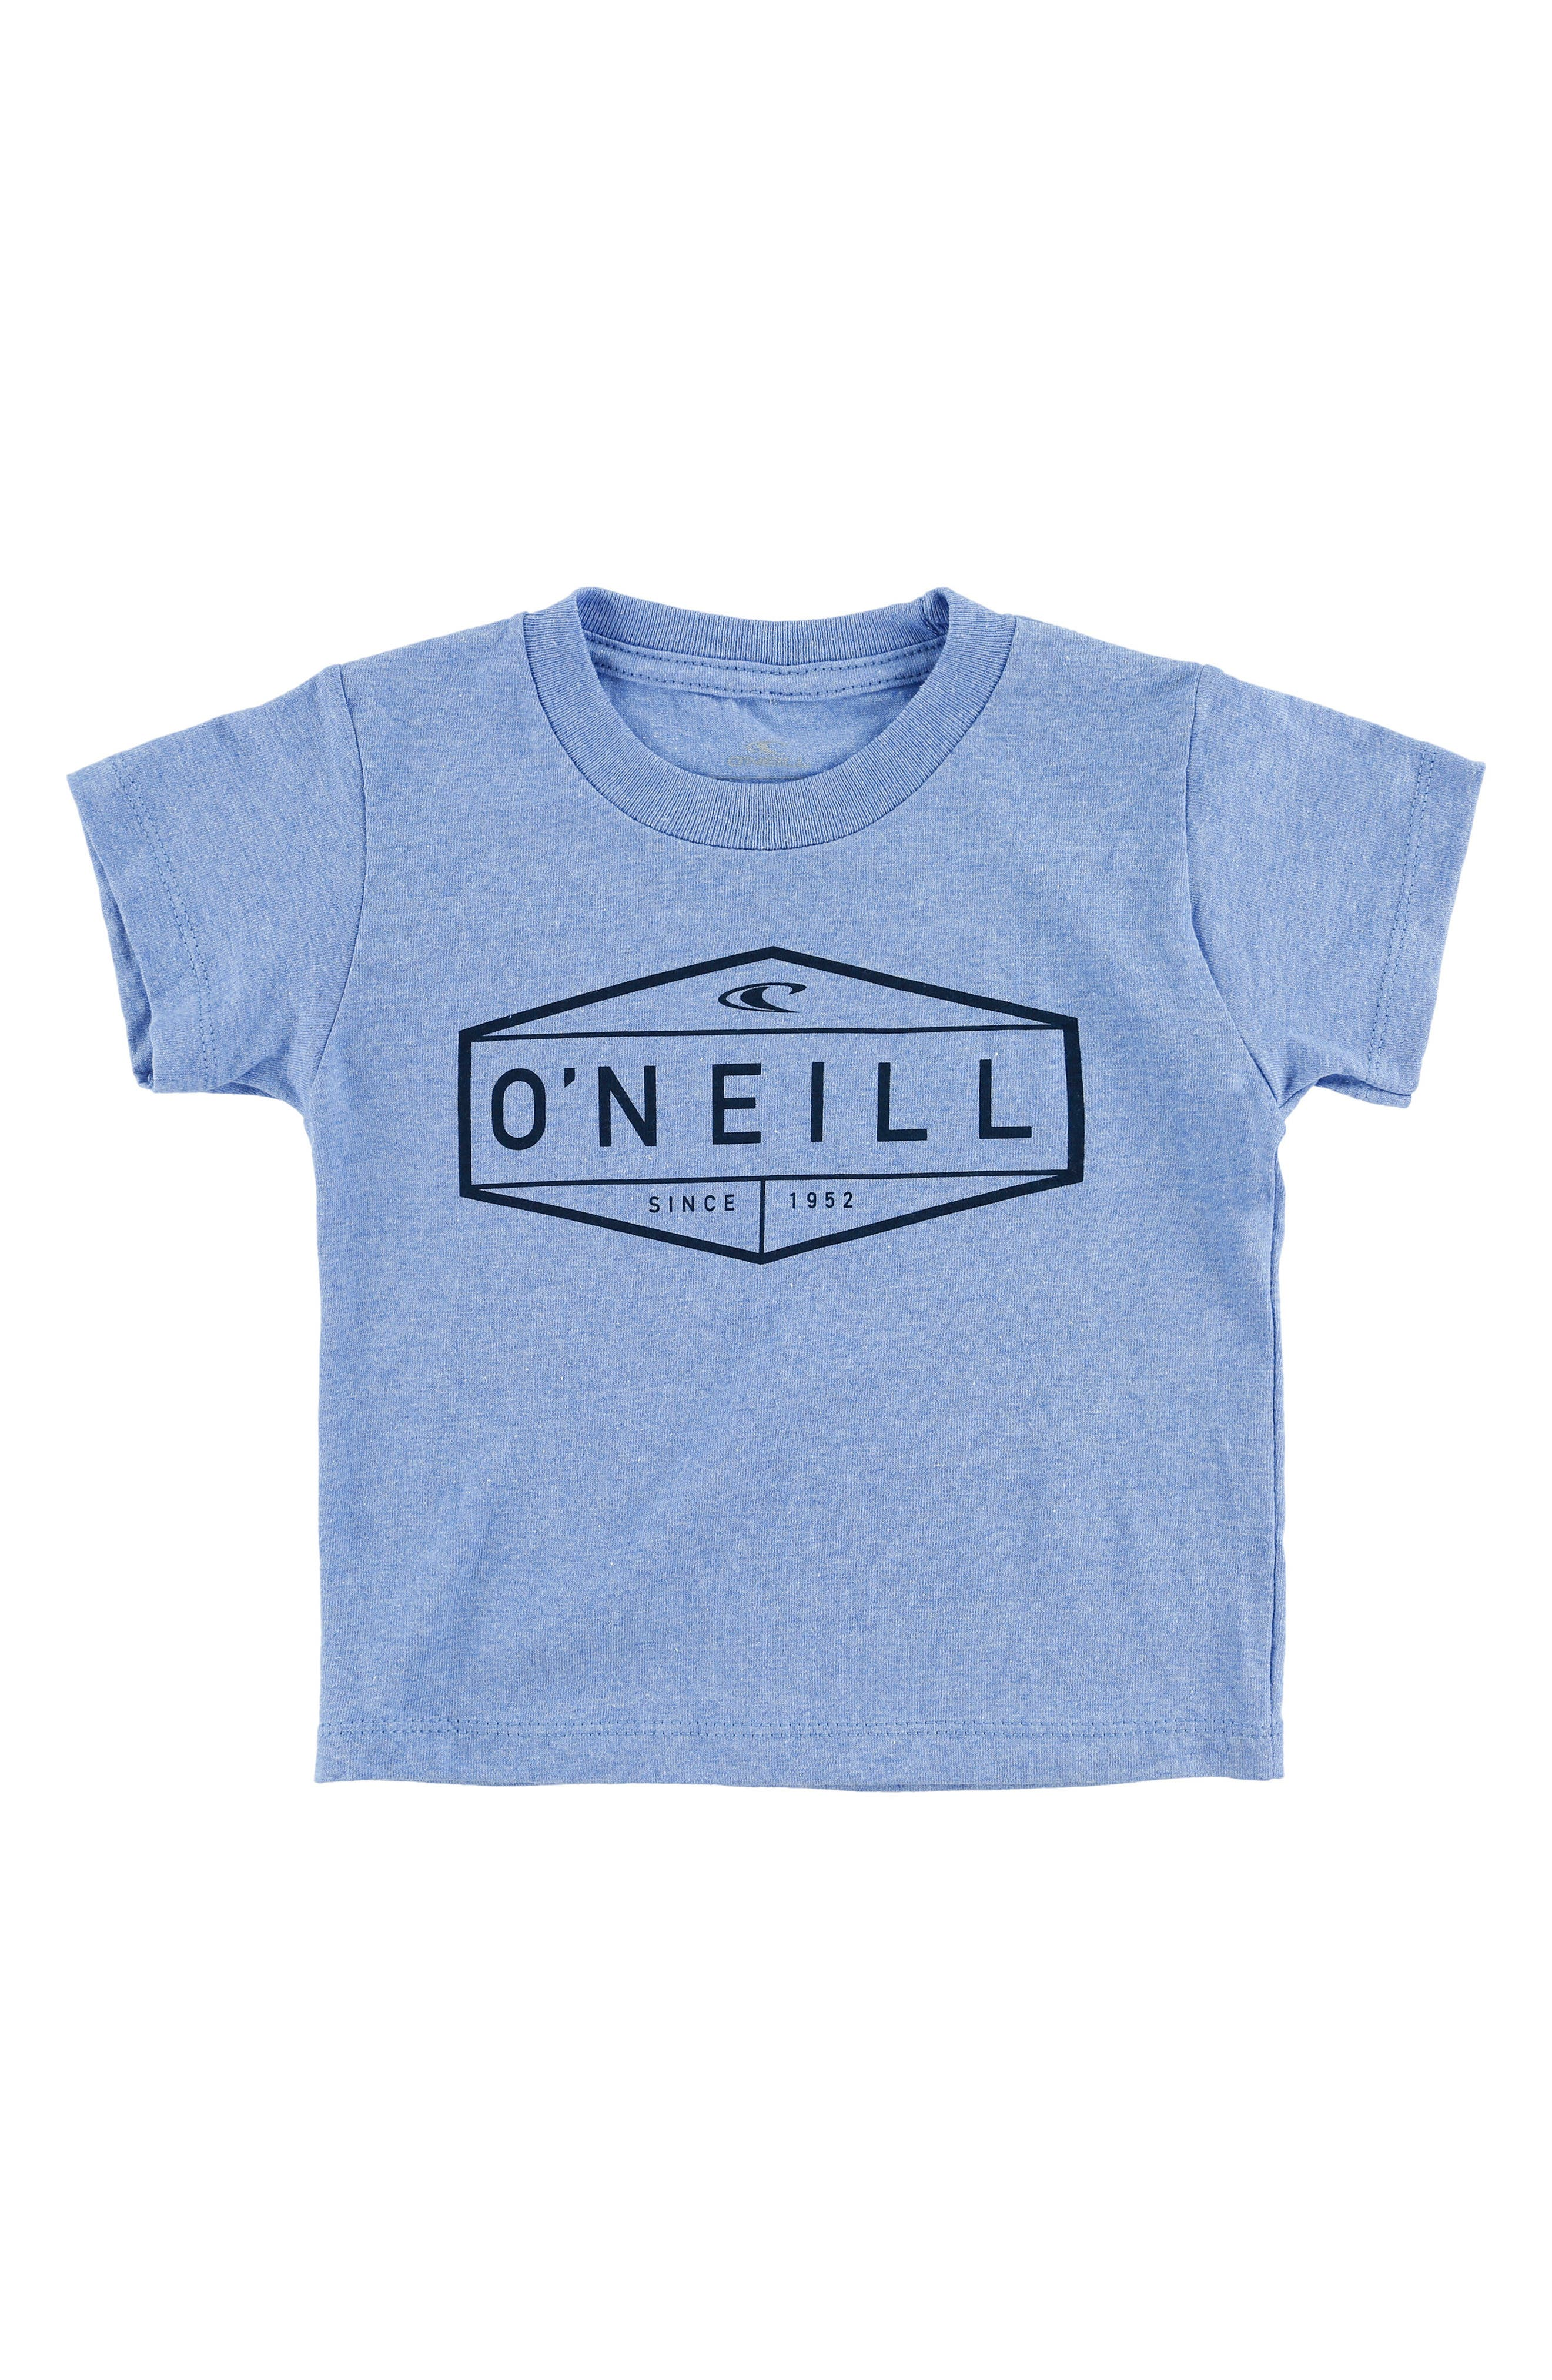 O'Neill Boxer Graphic T-Shirt (Toddler Boys)